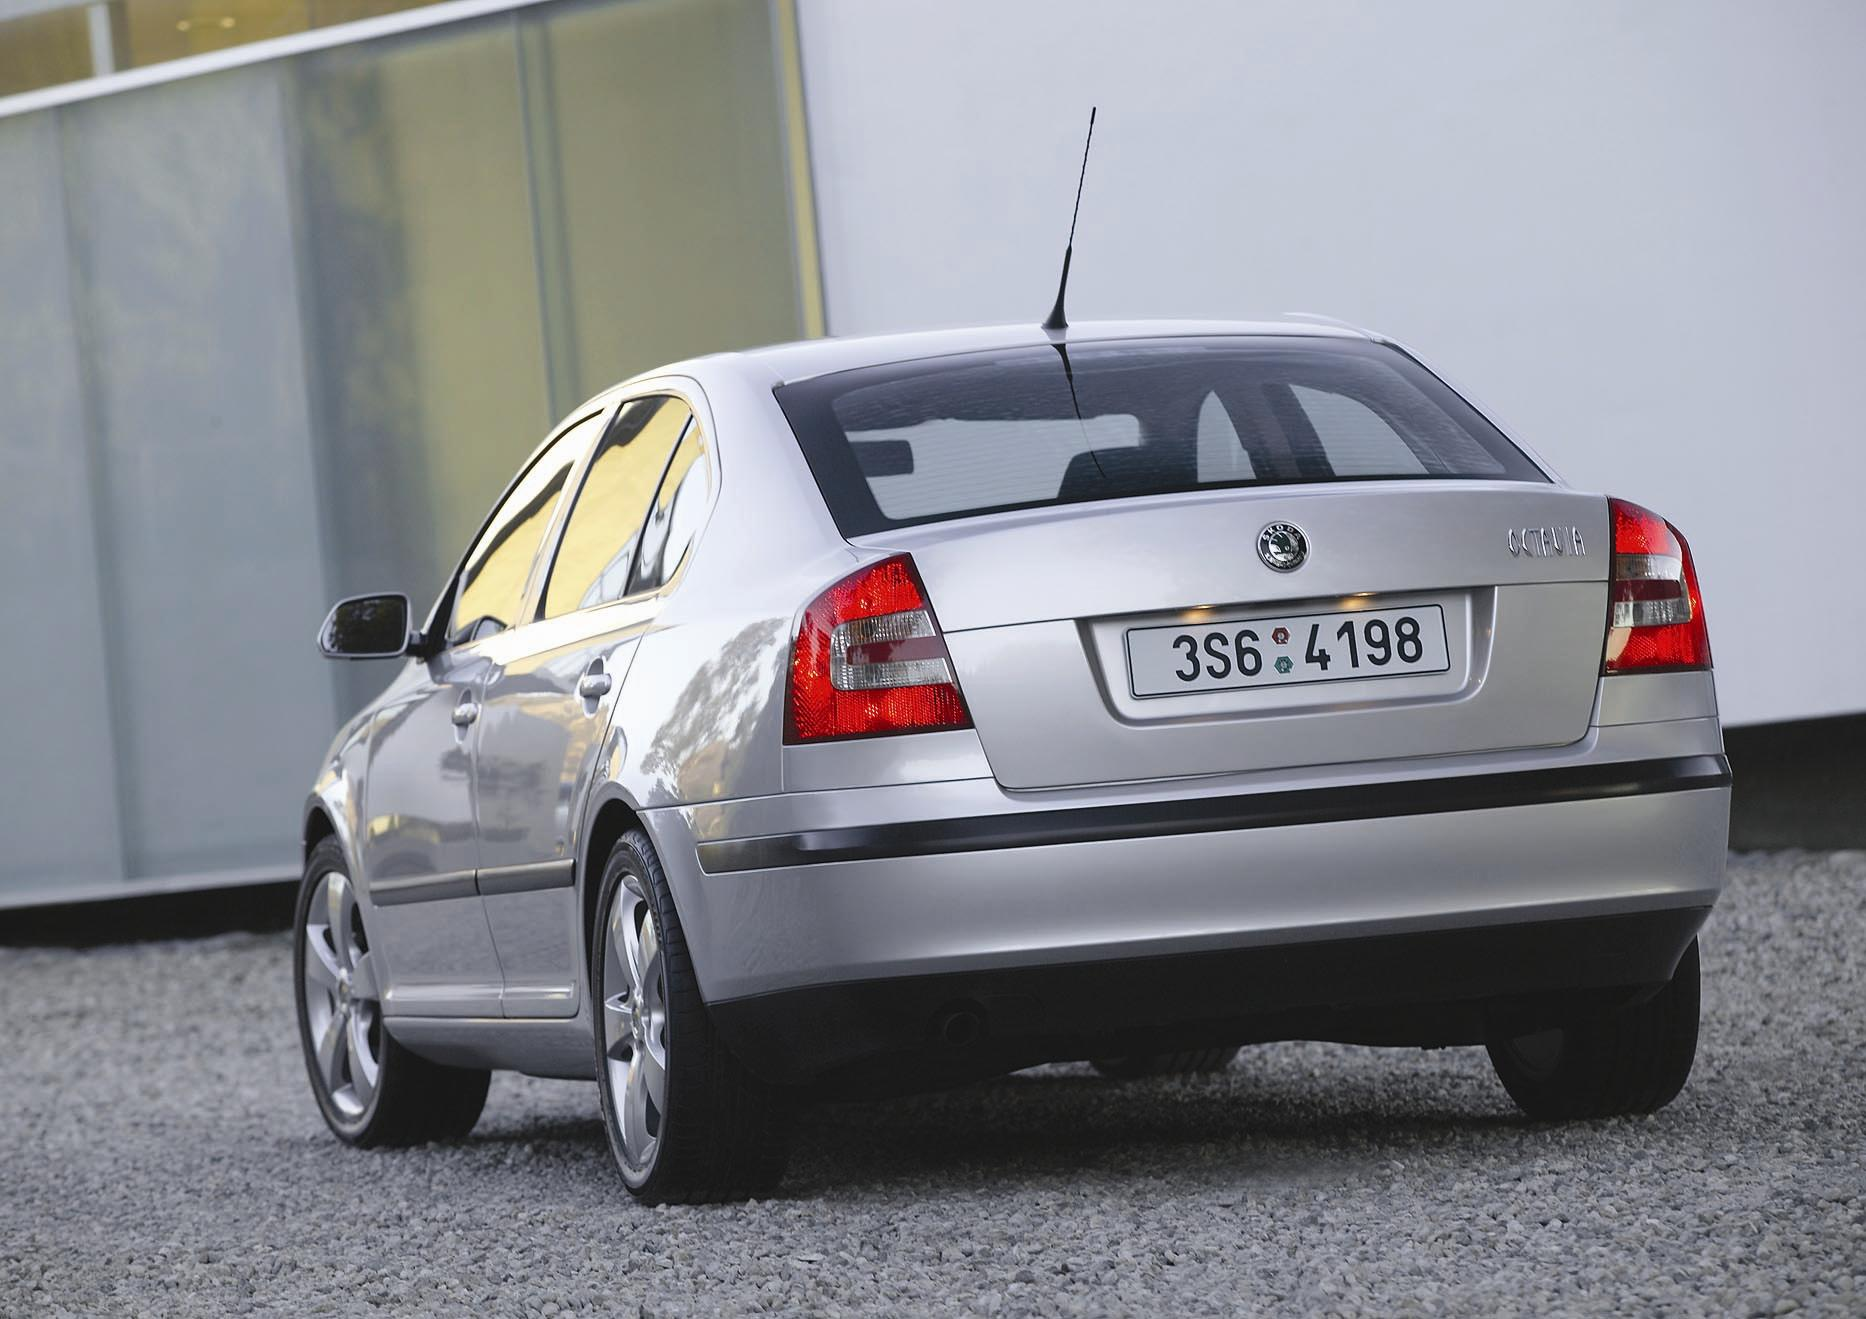 SKODA Octavia II specs & photos - 2004, 2005, 2006, 2007, 2008 - autoevolution